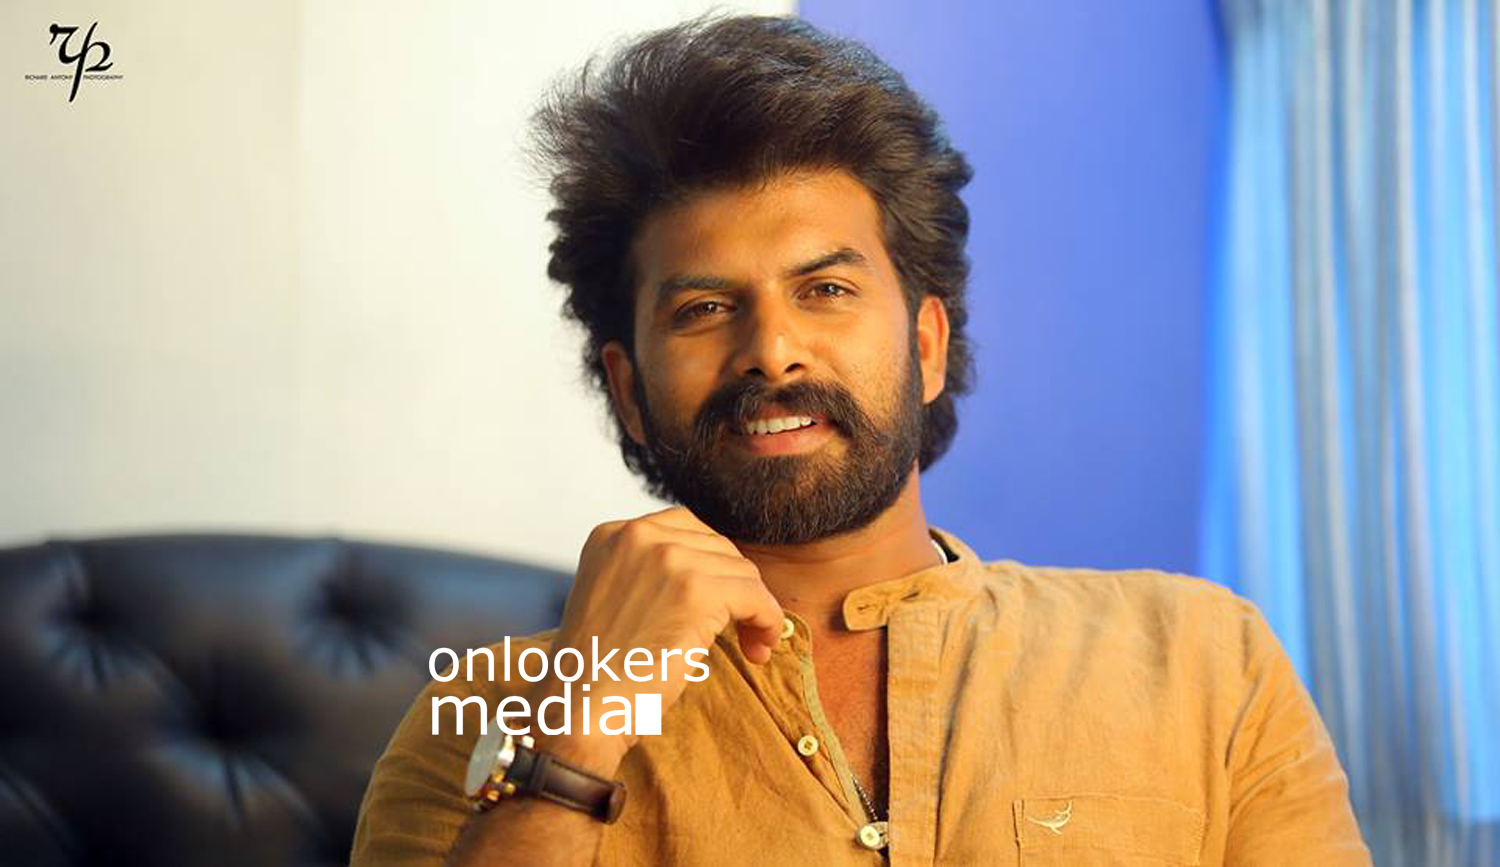 Sunny Wayne, Vadaka Gunda, Midhun Manuel Thomas, aadu oru beekarajeeviyanu director, sunny wayne midhun manual movie, sunny wayn next movie